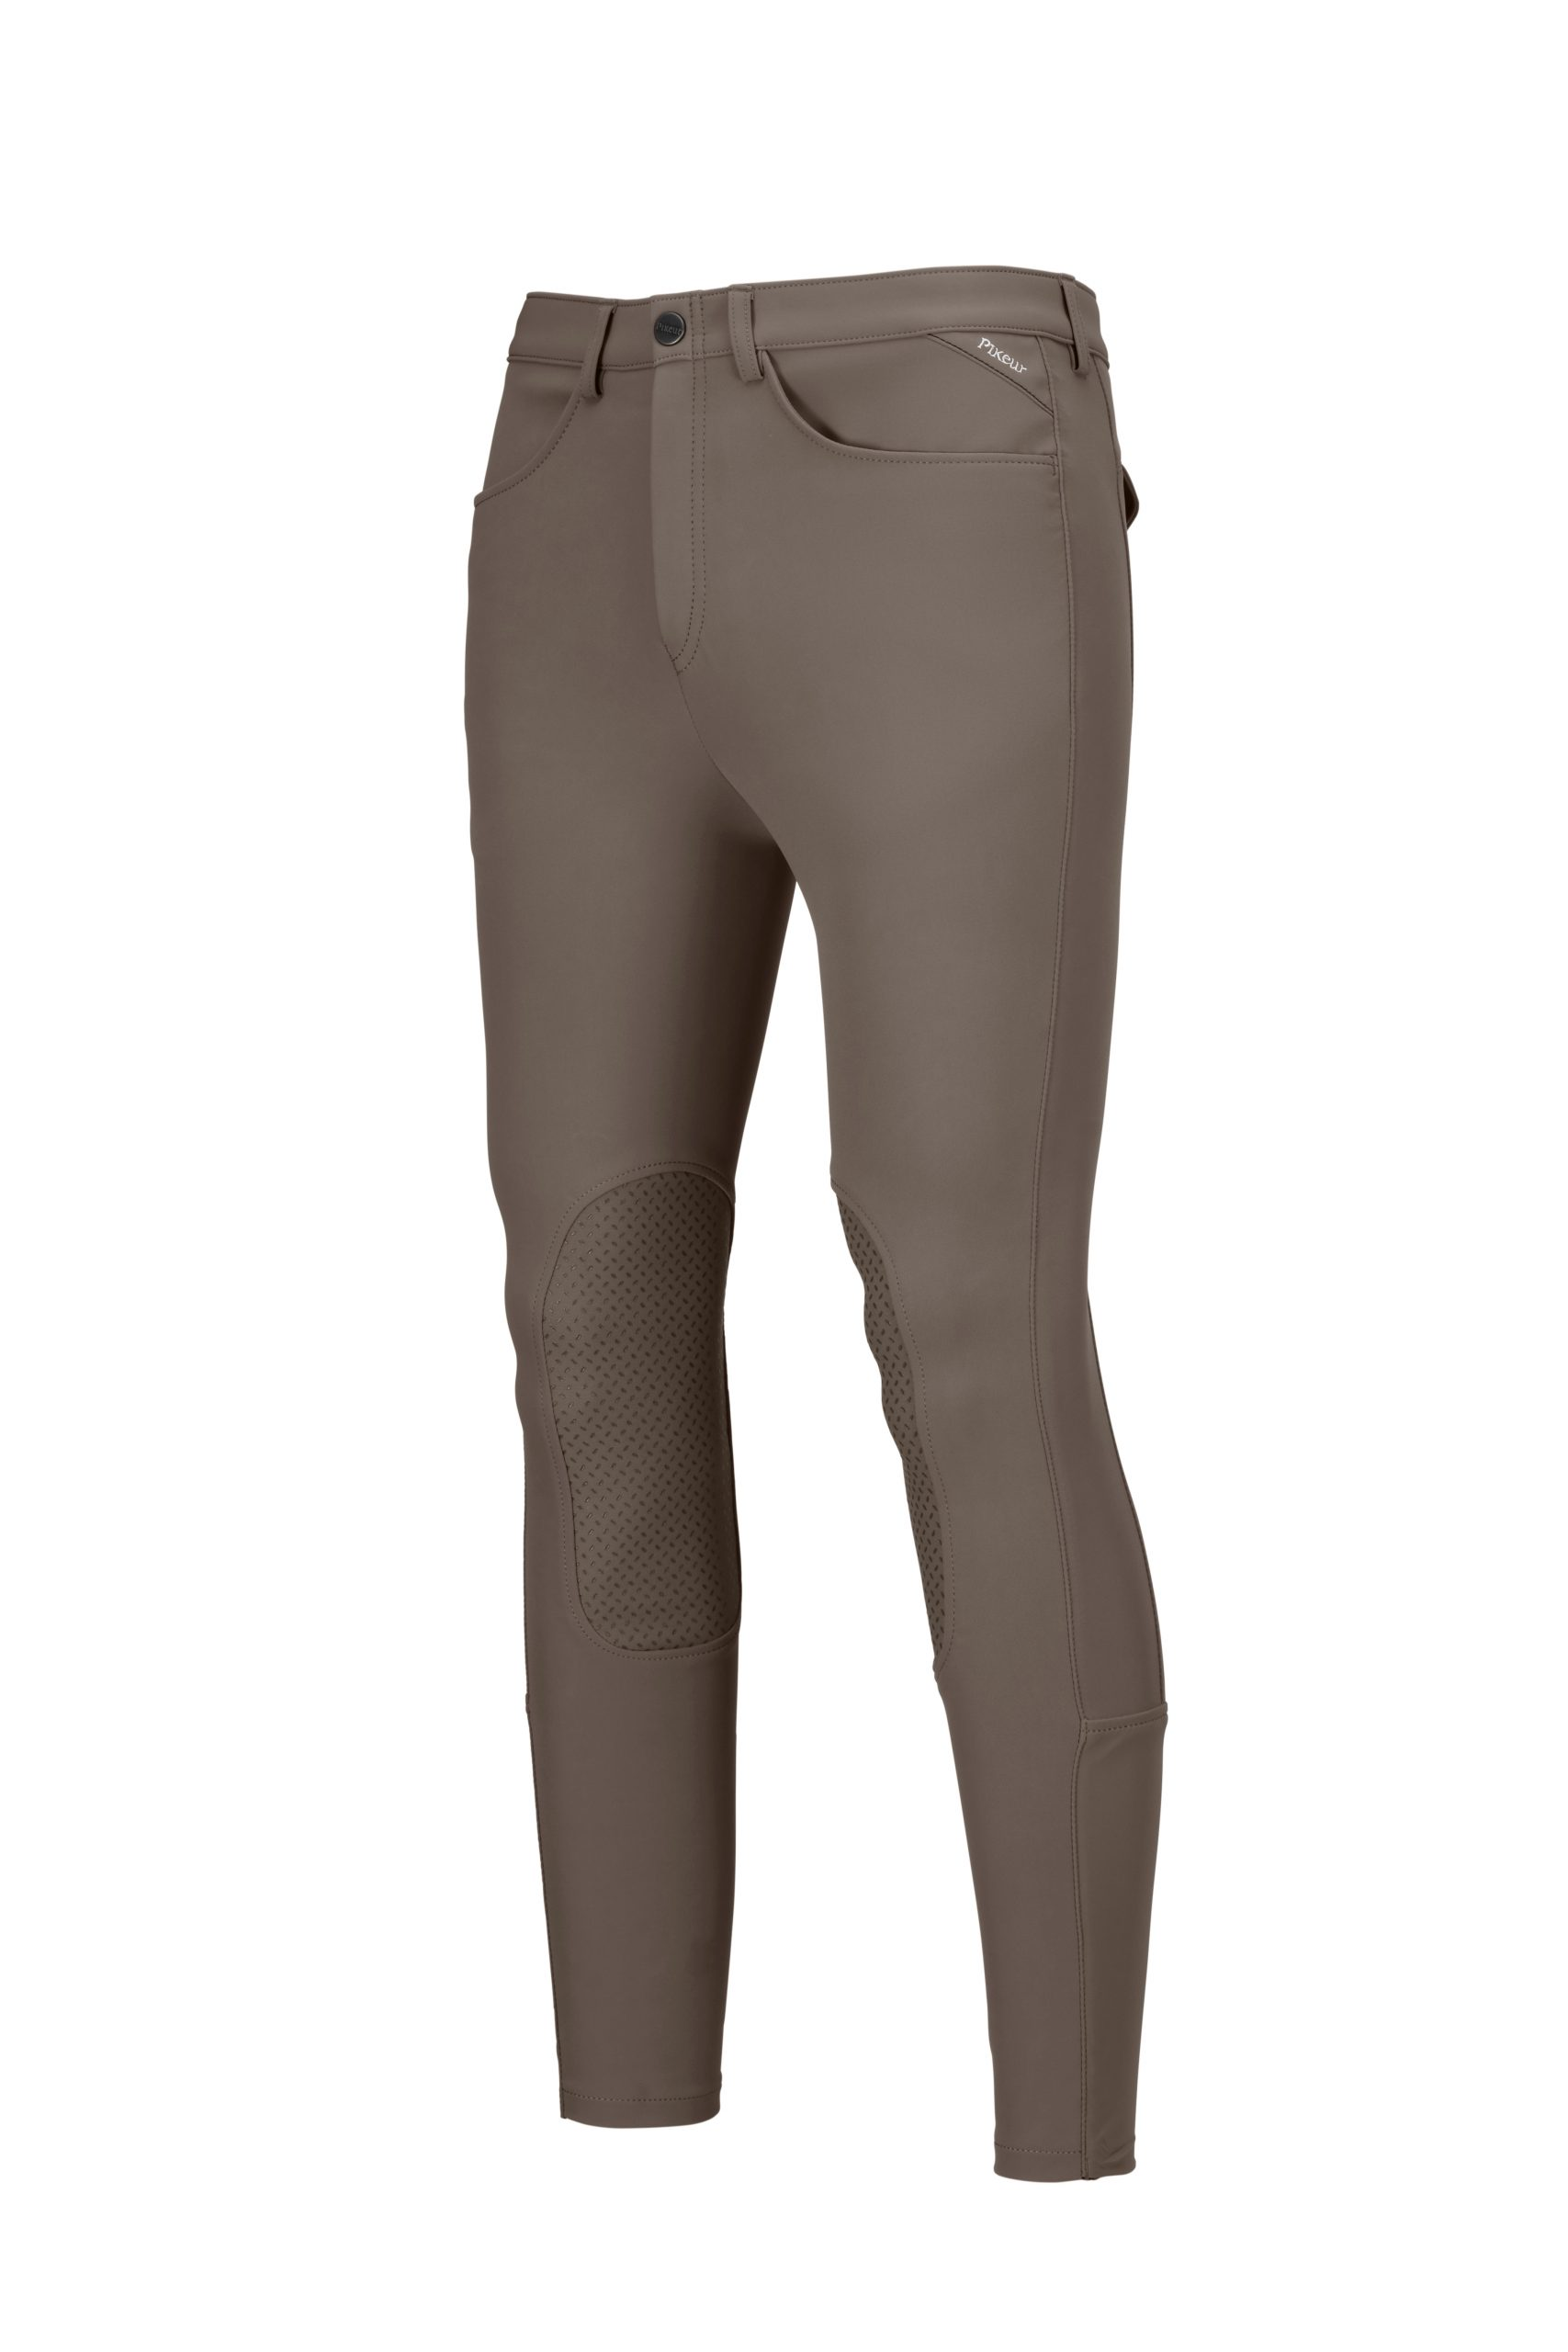 Pikeur Navaro Breeches with grip knee patches